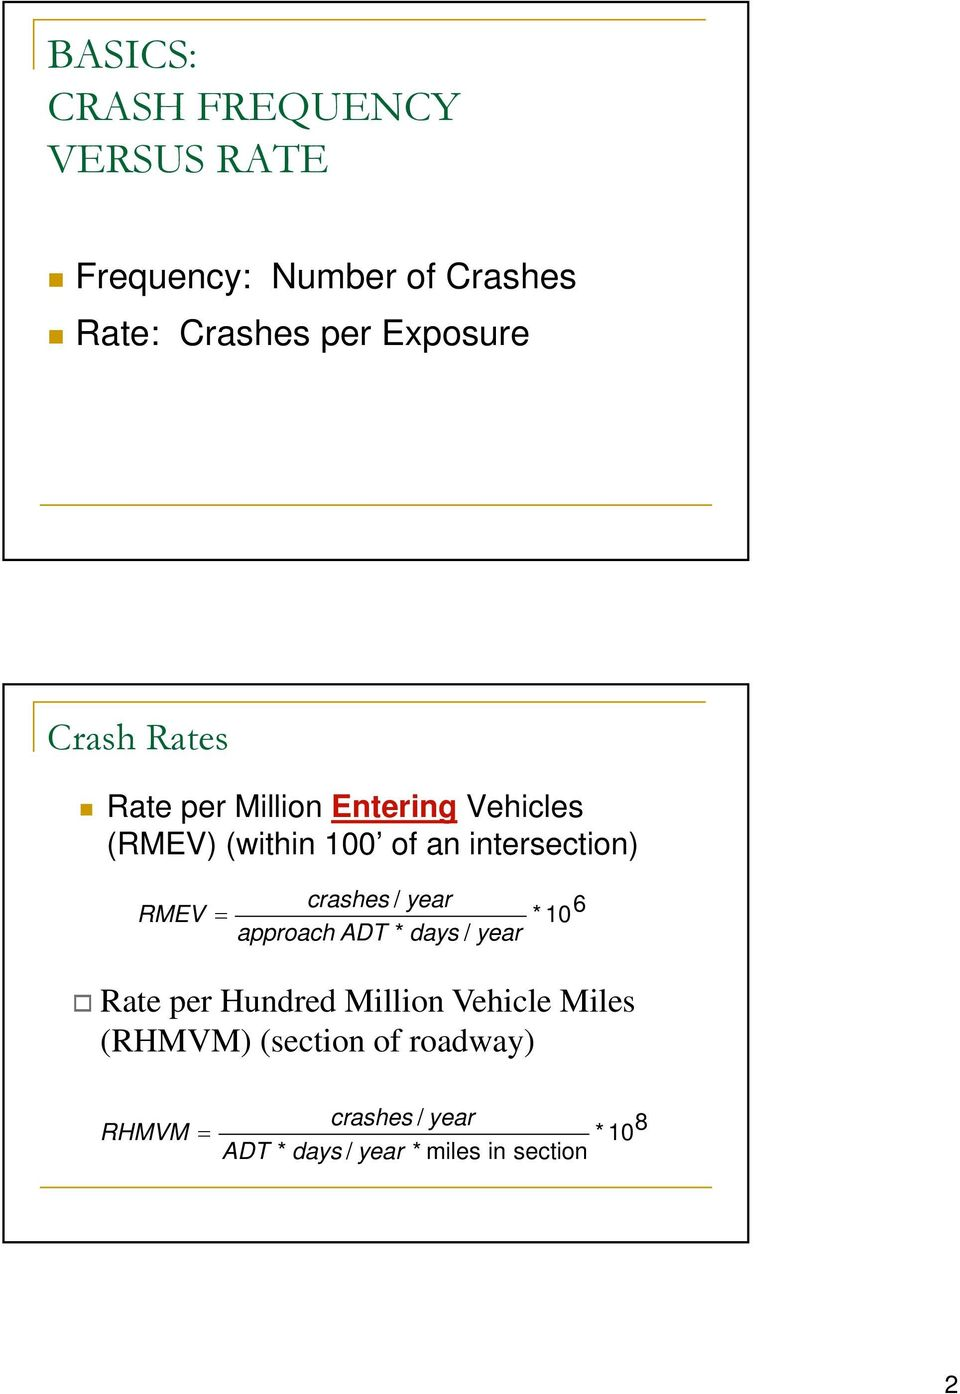 crashes approach ADT / * year days / year 6 * 10 Rate per Hundred Million Vehicle Miles